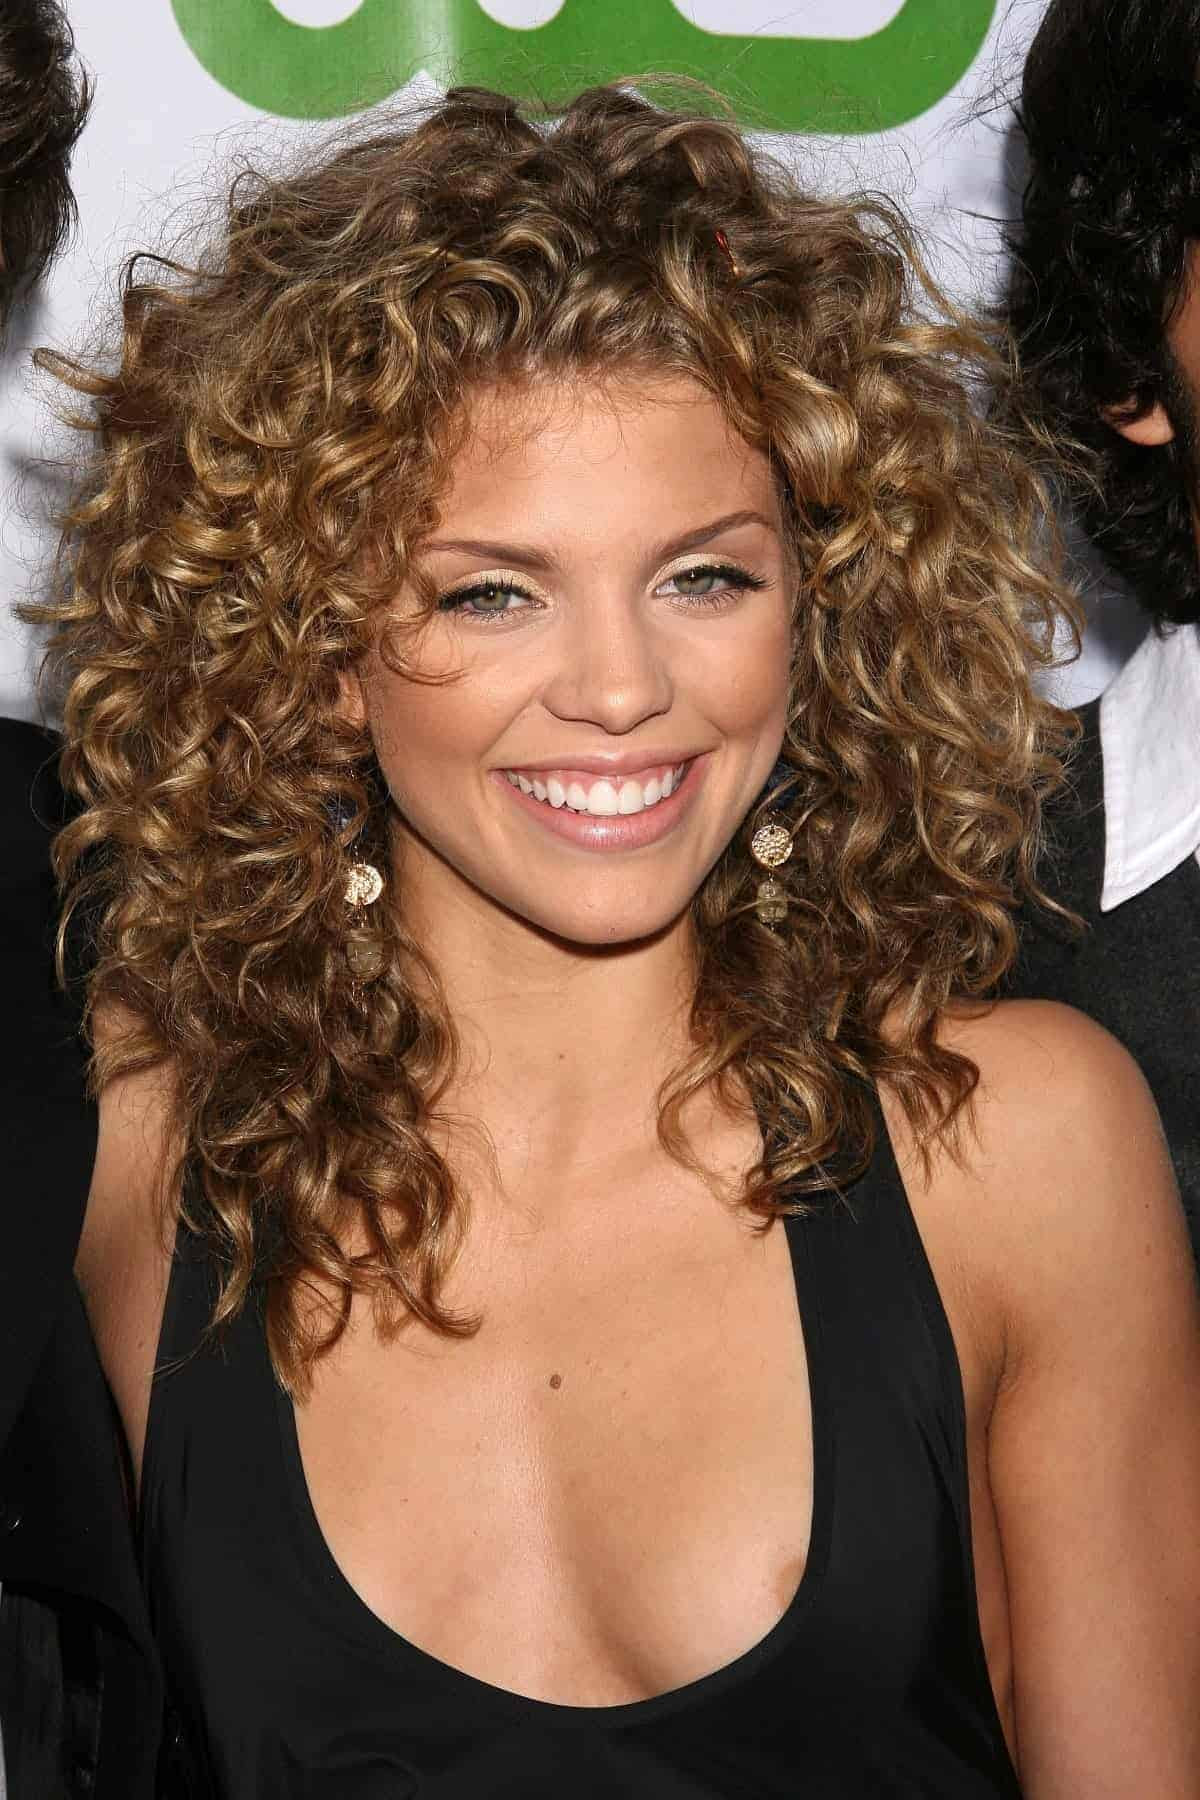 Hairstyles for curly hair 2015, Women styles, hairstyles ...